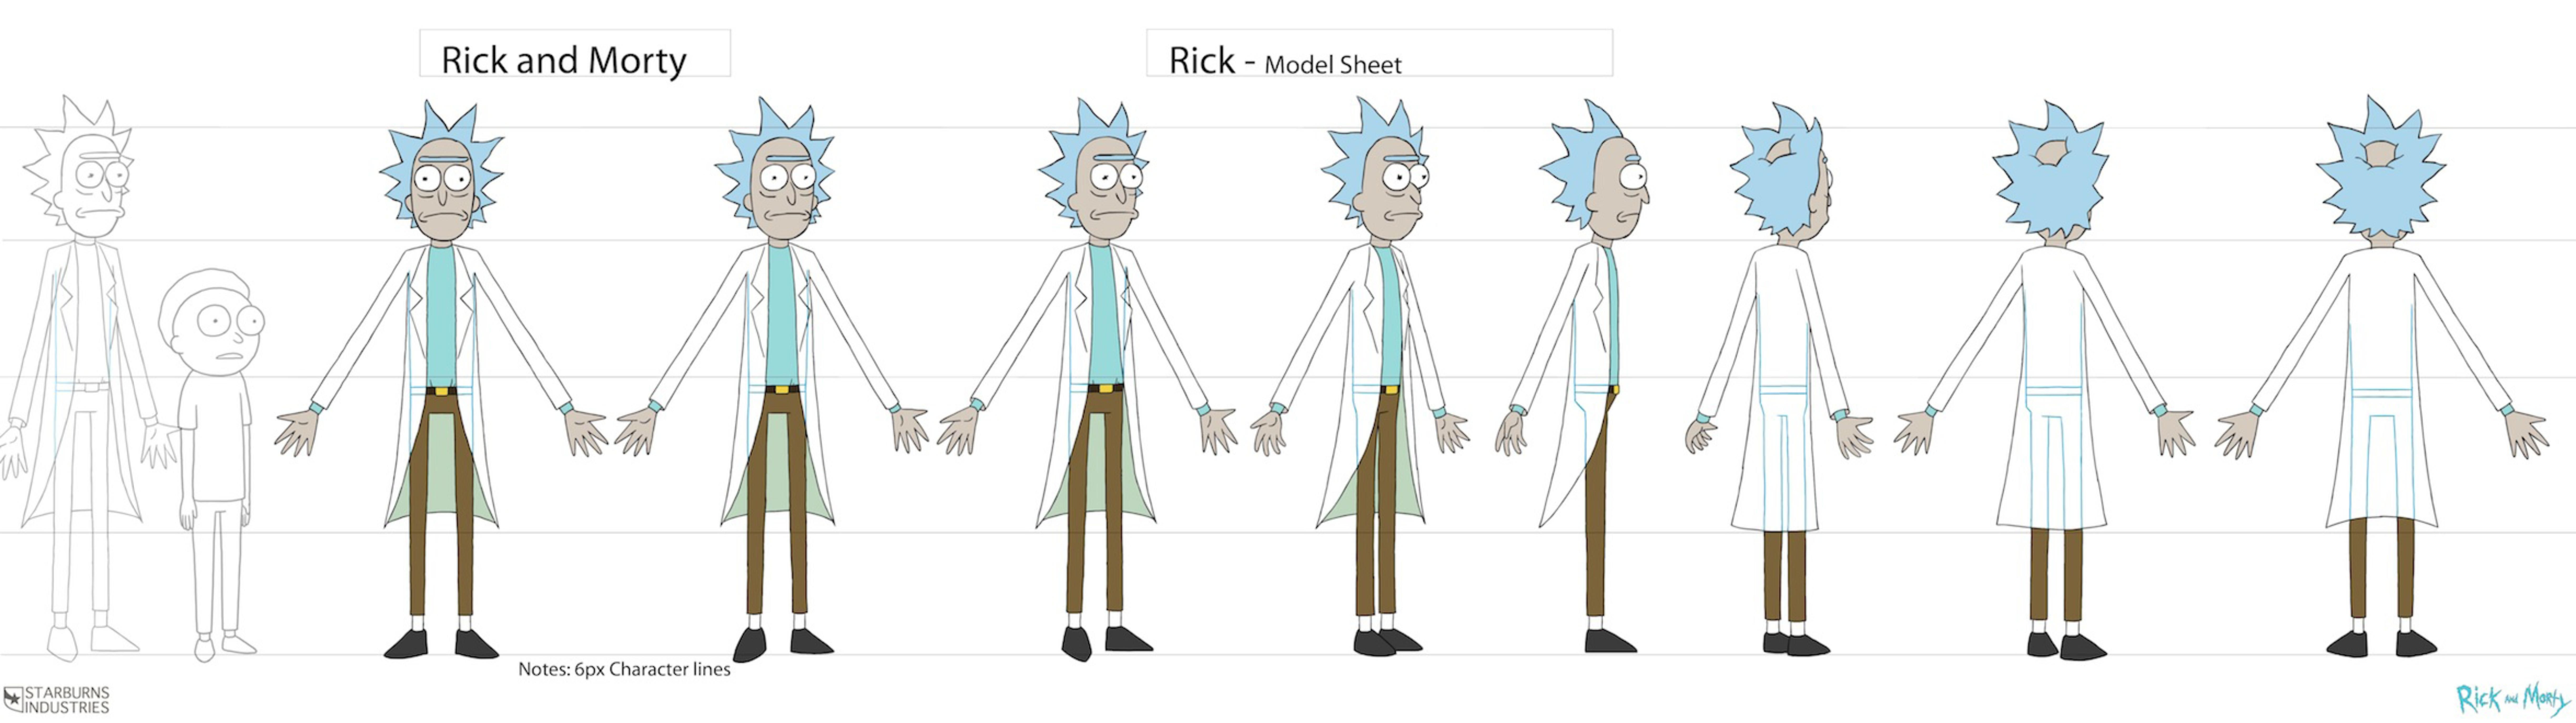 Exploring Character Design Pdf : Rick and morty storyboard guidelines